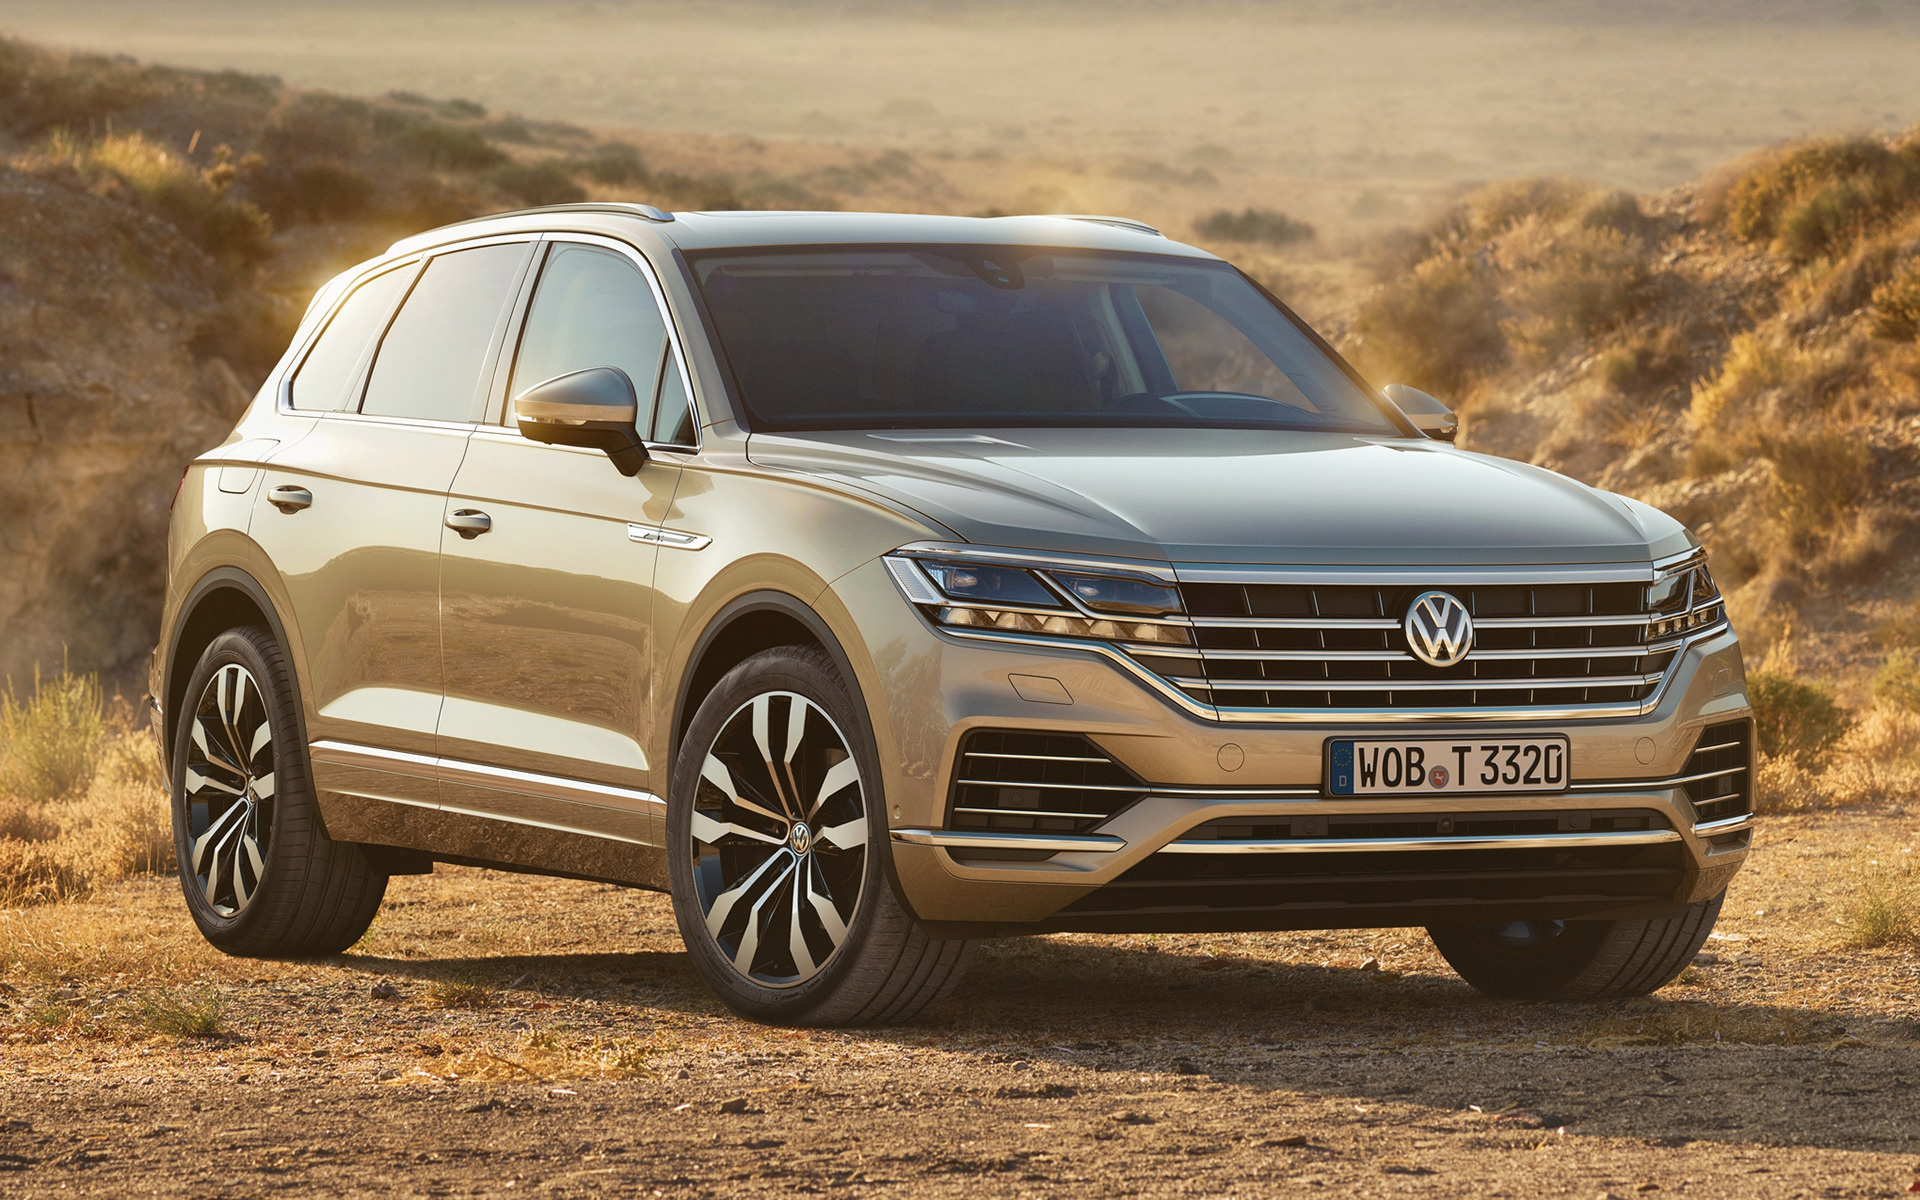 2018 Volkswagen Touareg   Wallpapers and HD Images Car Pixel 1920x1200